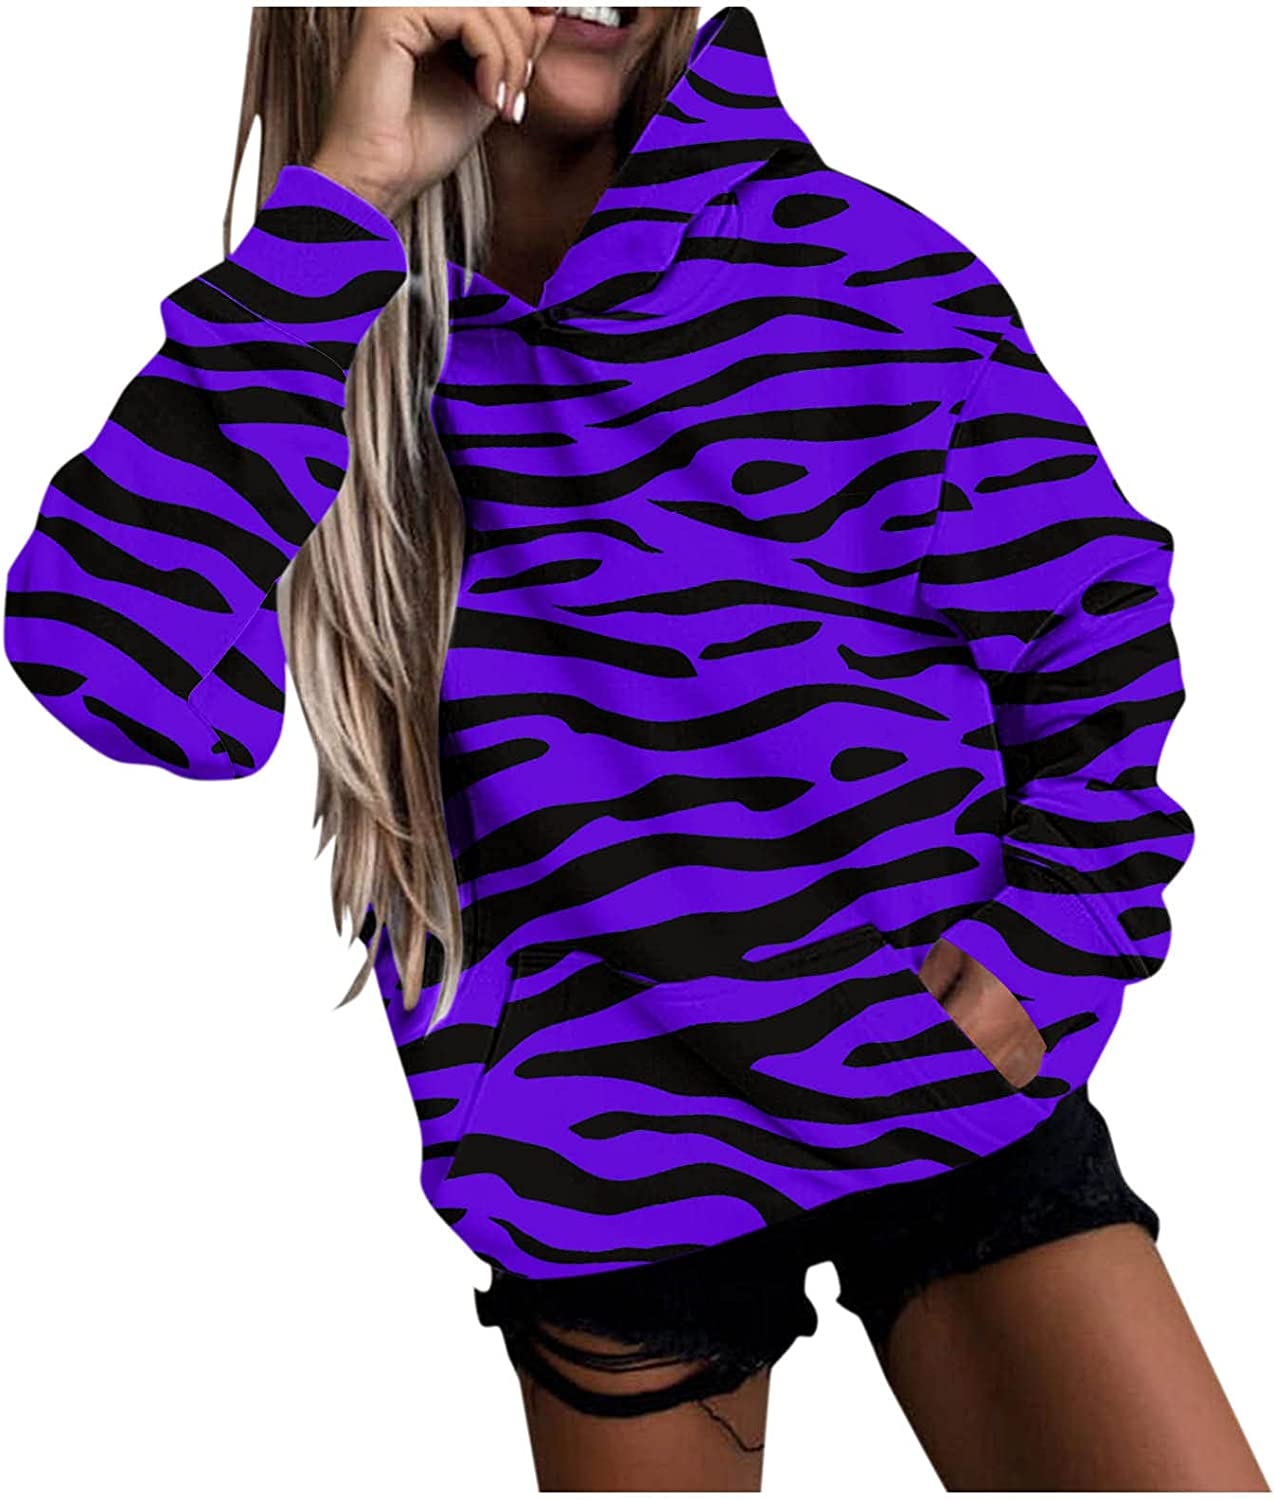 Women Casual Stripe Long Sleeve Camouflage Printed Hooded Sweatshirt Tops Loose Warm Blouse with Pockets